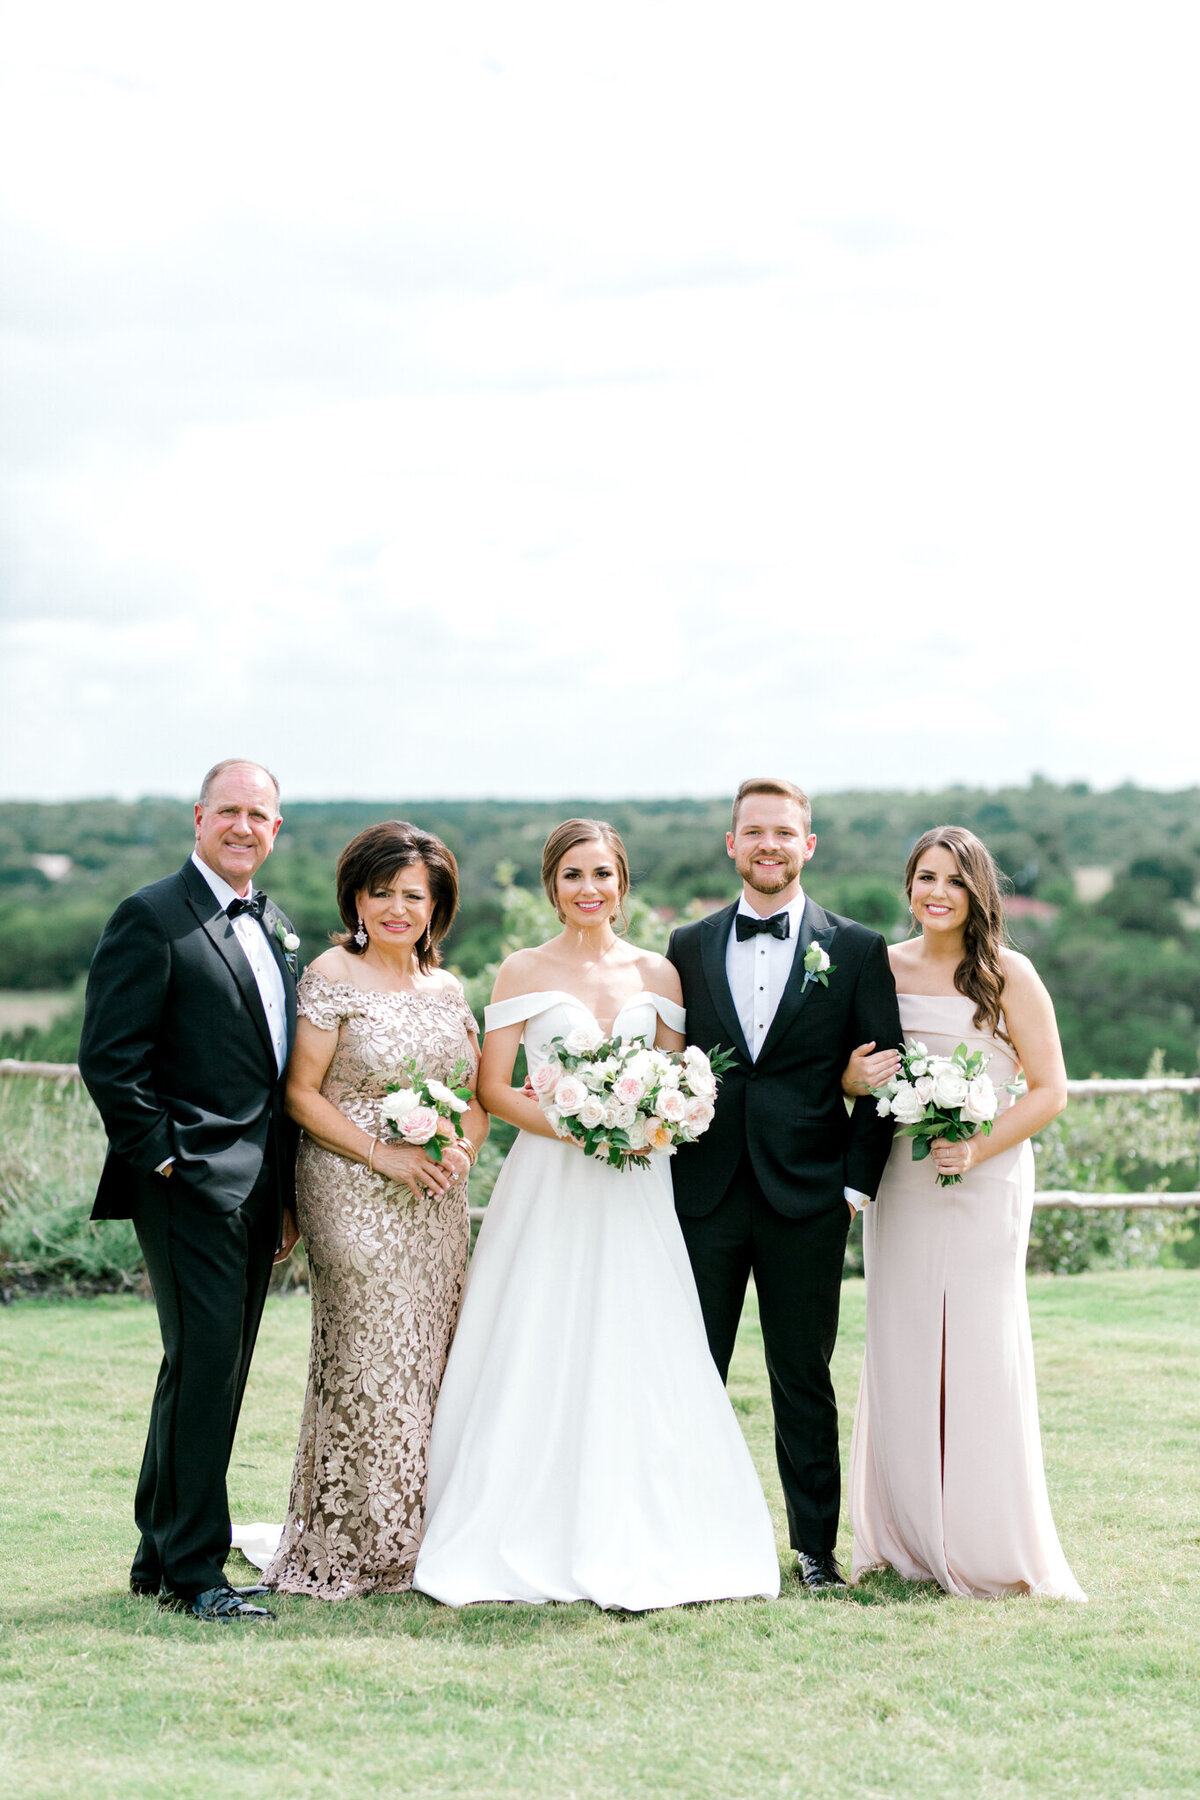 Lexi Broughton & Garrett Greer Wedding at Dove Ridge Vineyards | Sami Kathryn Photography | Dallas Wedding Photography-141